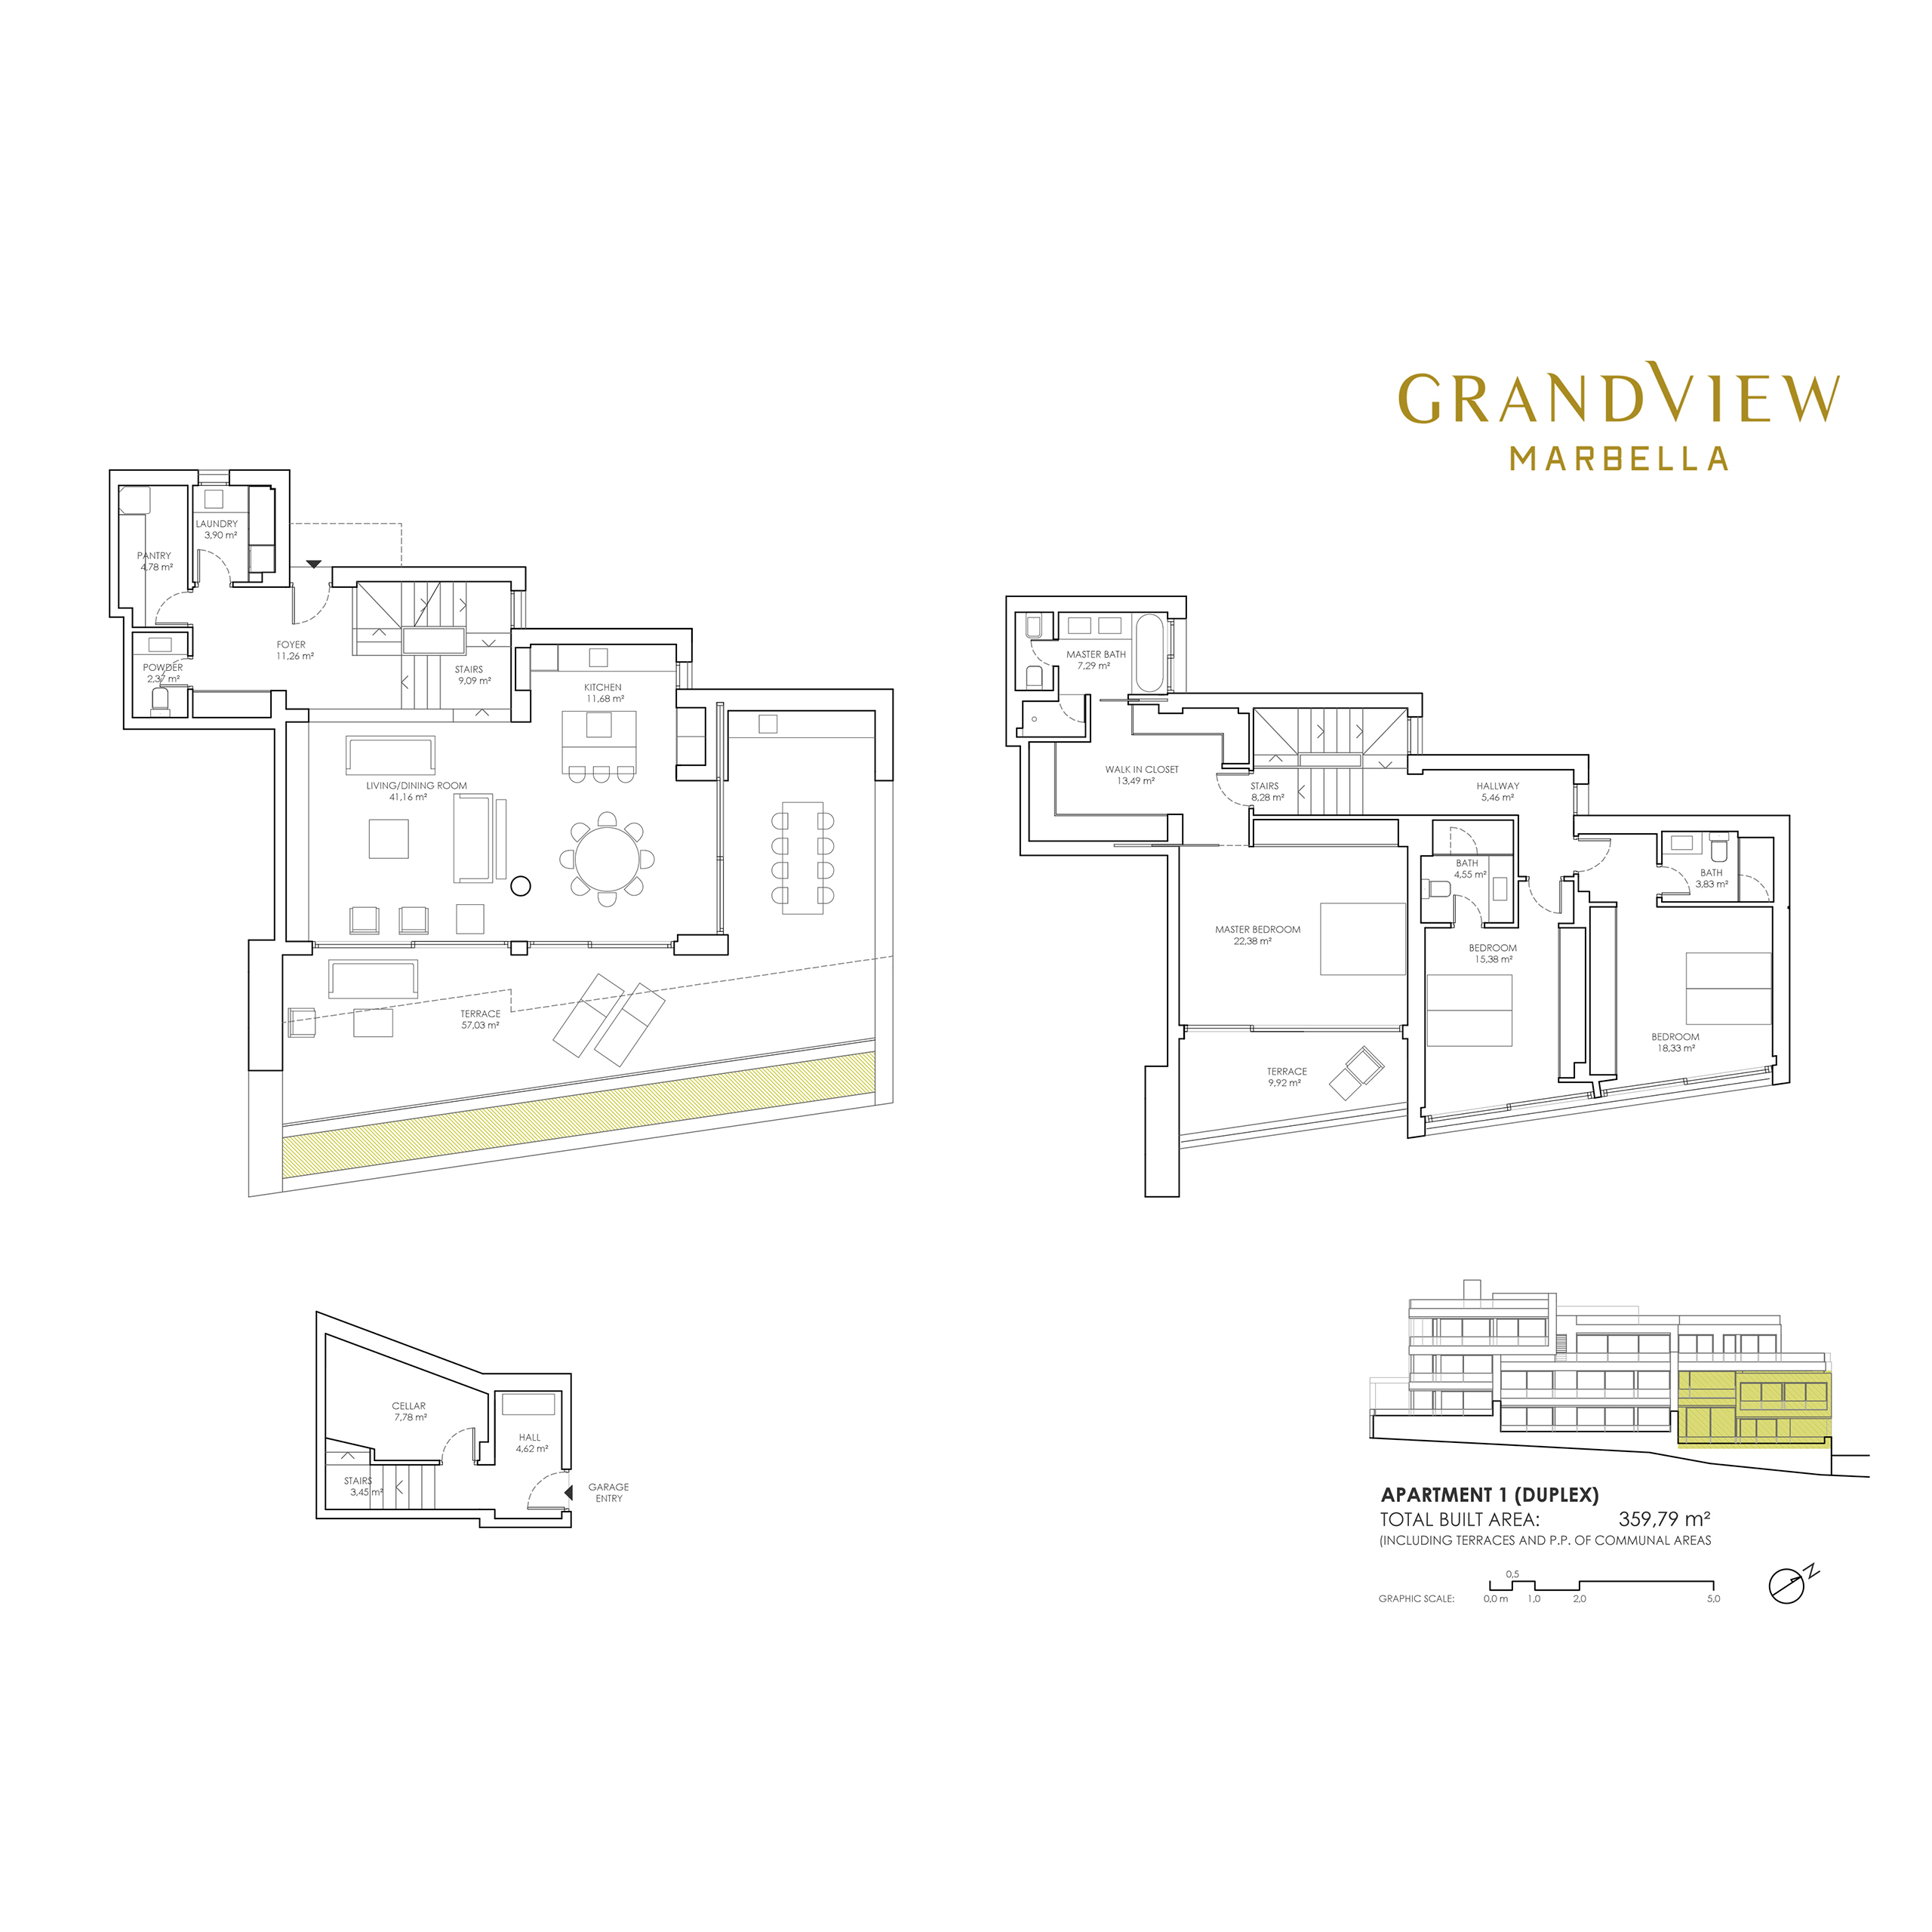 Grand View Marbella Apartment 1 DUPLEX  floorplan